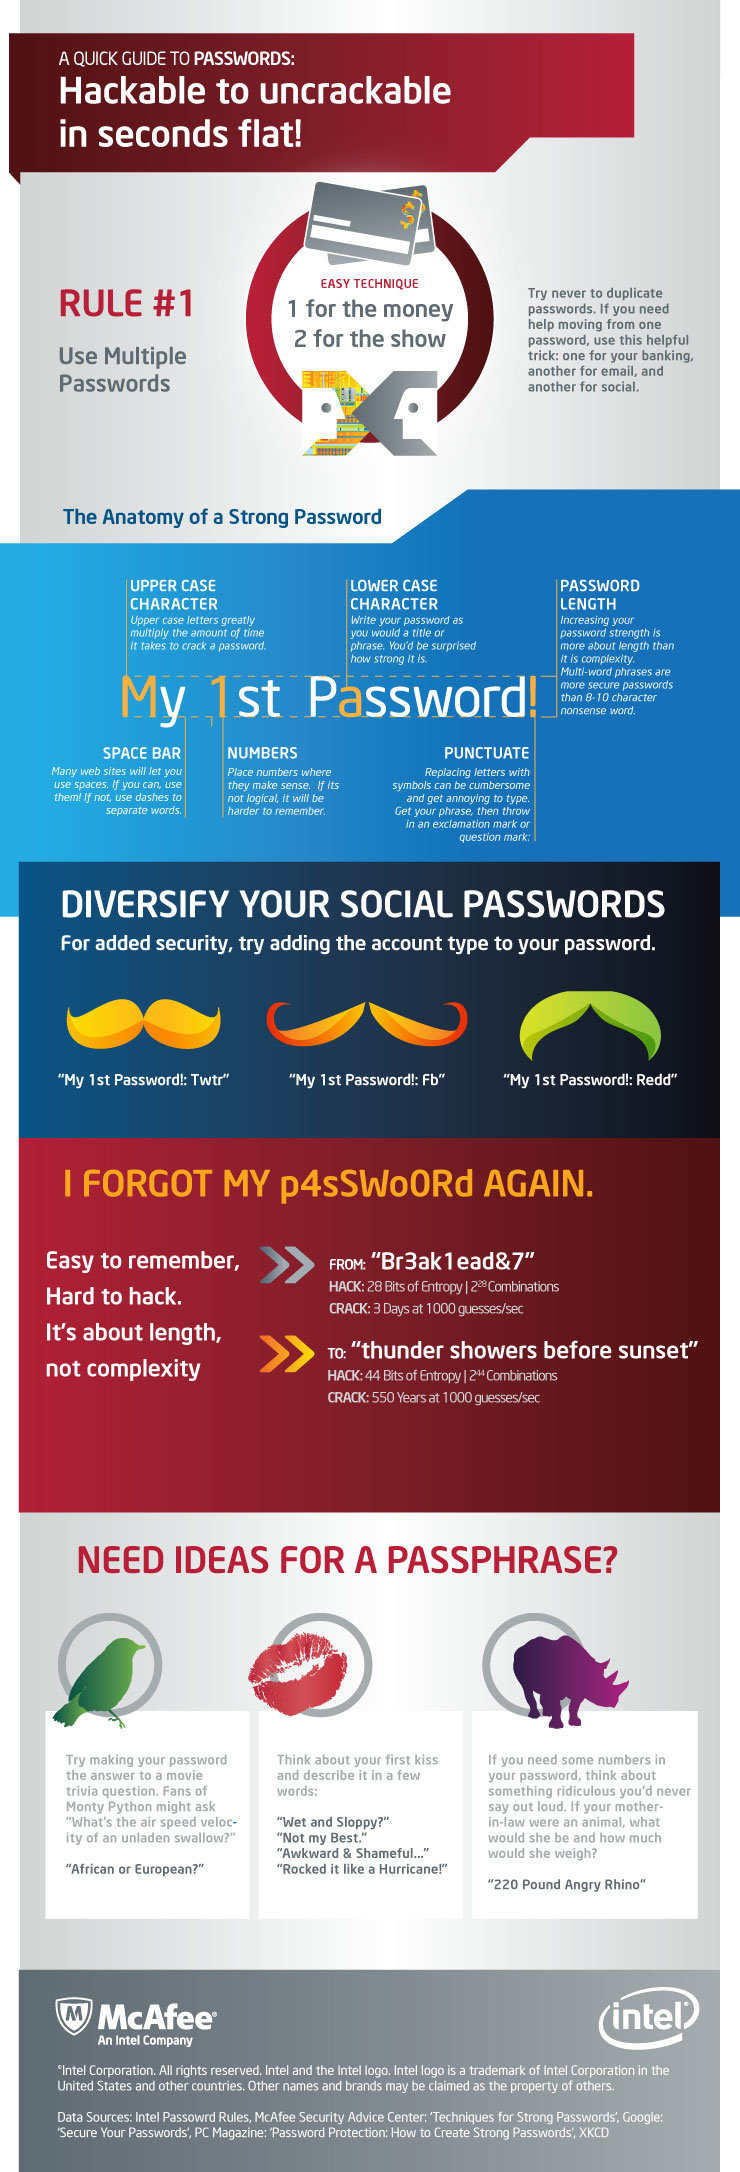 Are you hackable or uncrackable #infographic